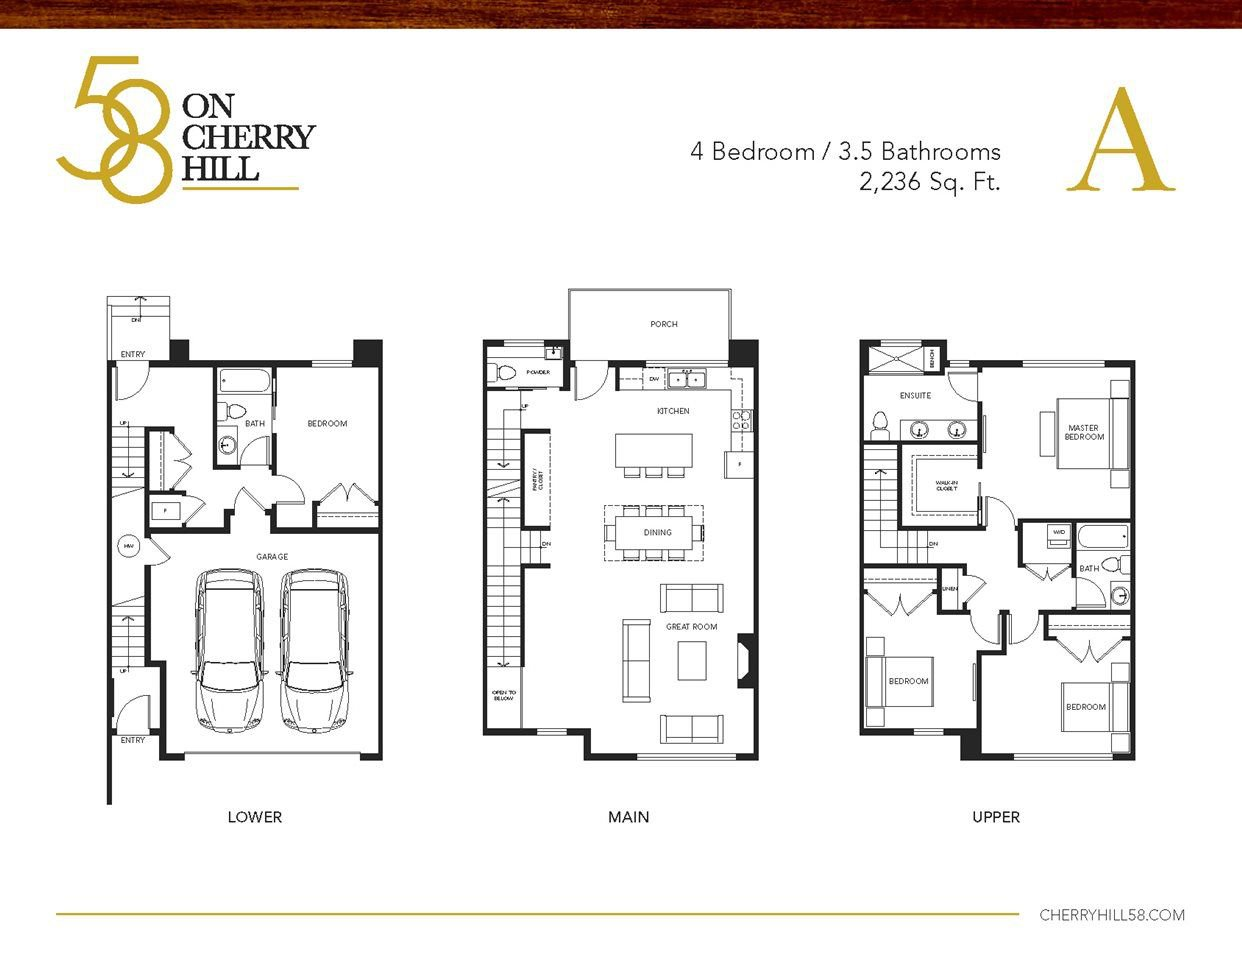 """Photo 8: Photos: 10 33209 CHERRY Avenue in Mission: Mission BC Townhouse for sale in """"58 on CHERRY HILL"""" : MLS®# R2245094"""